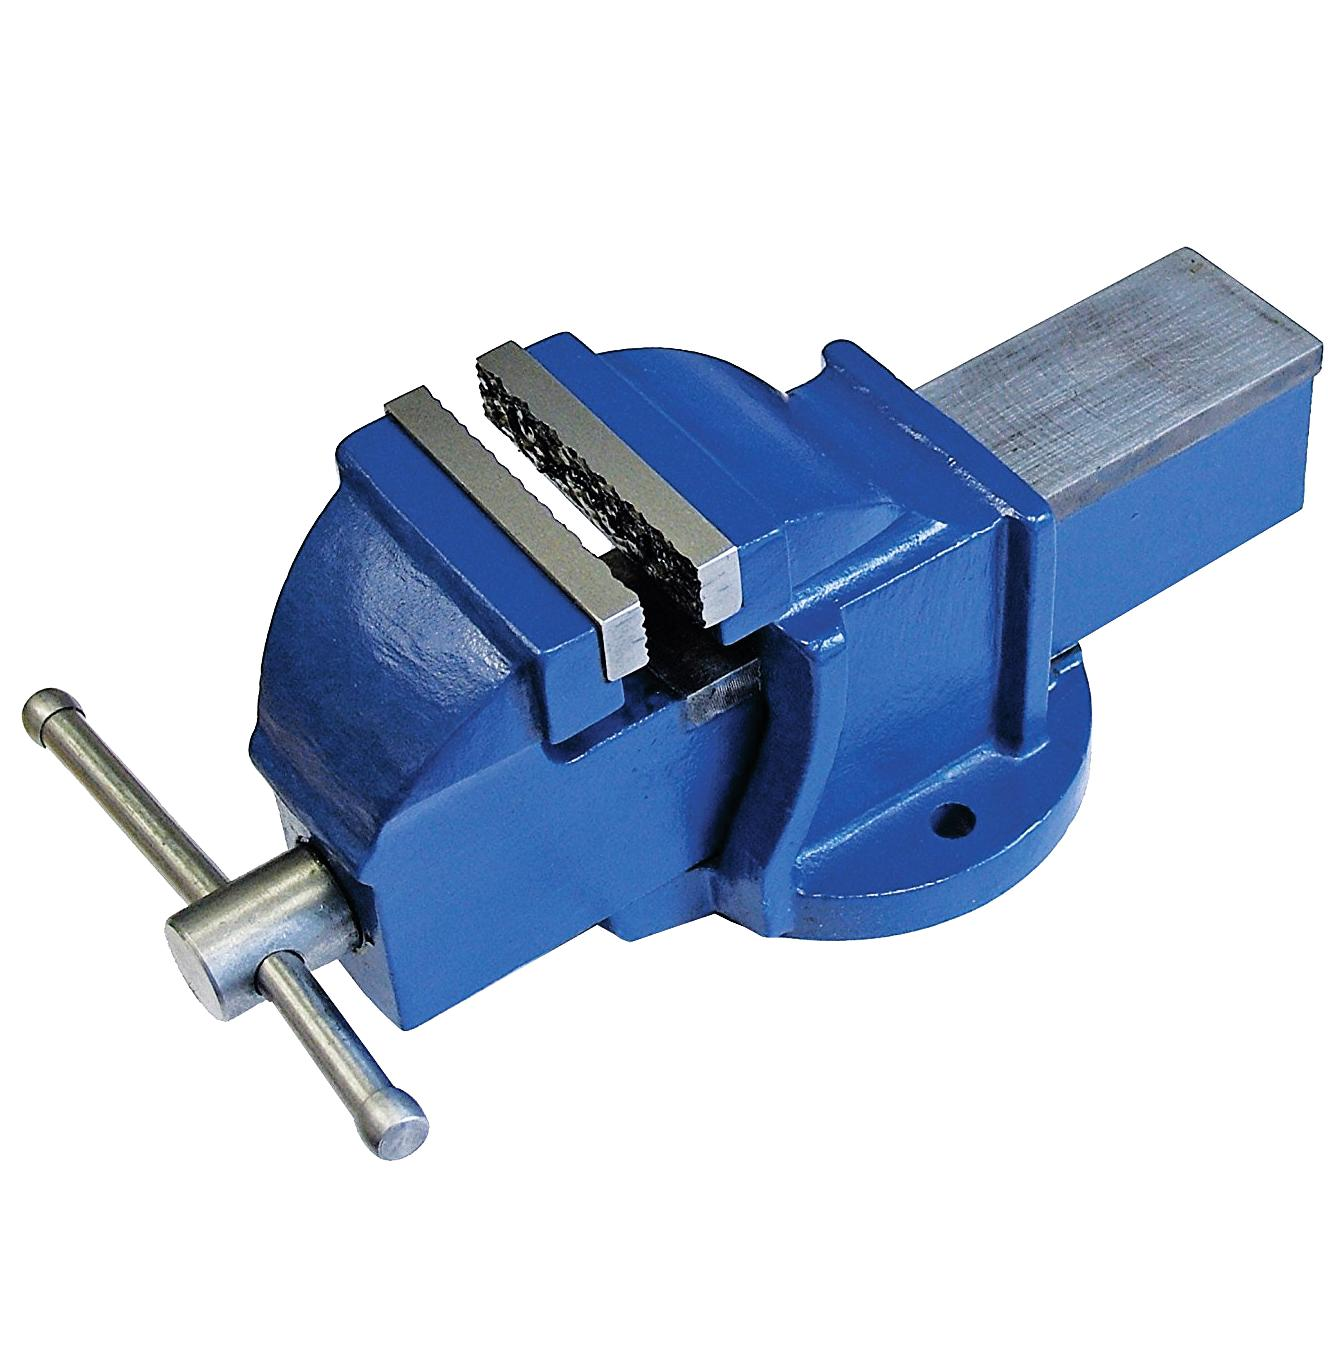 What Is A Bench Vise Used For: 4 100mm Jaw Bench Vice Workshop Clamp Work Bench Table